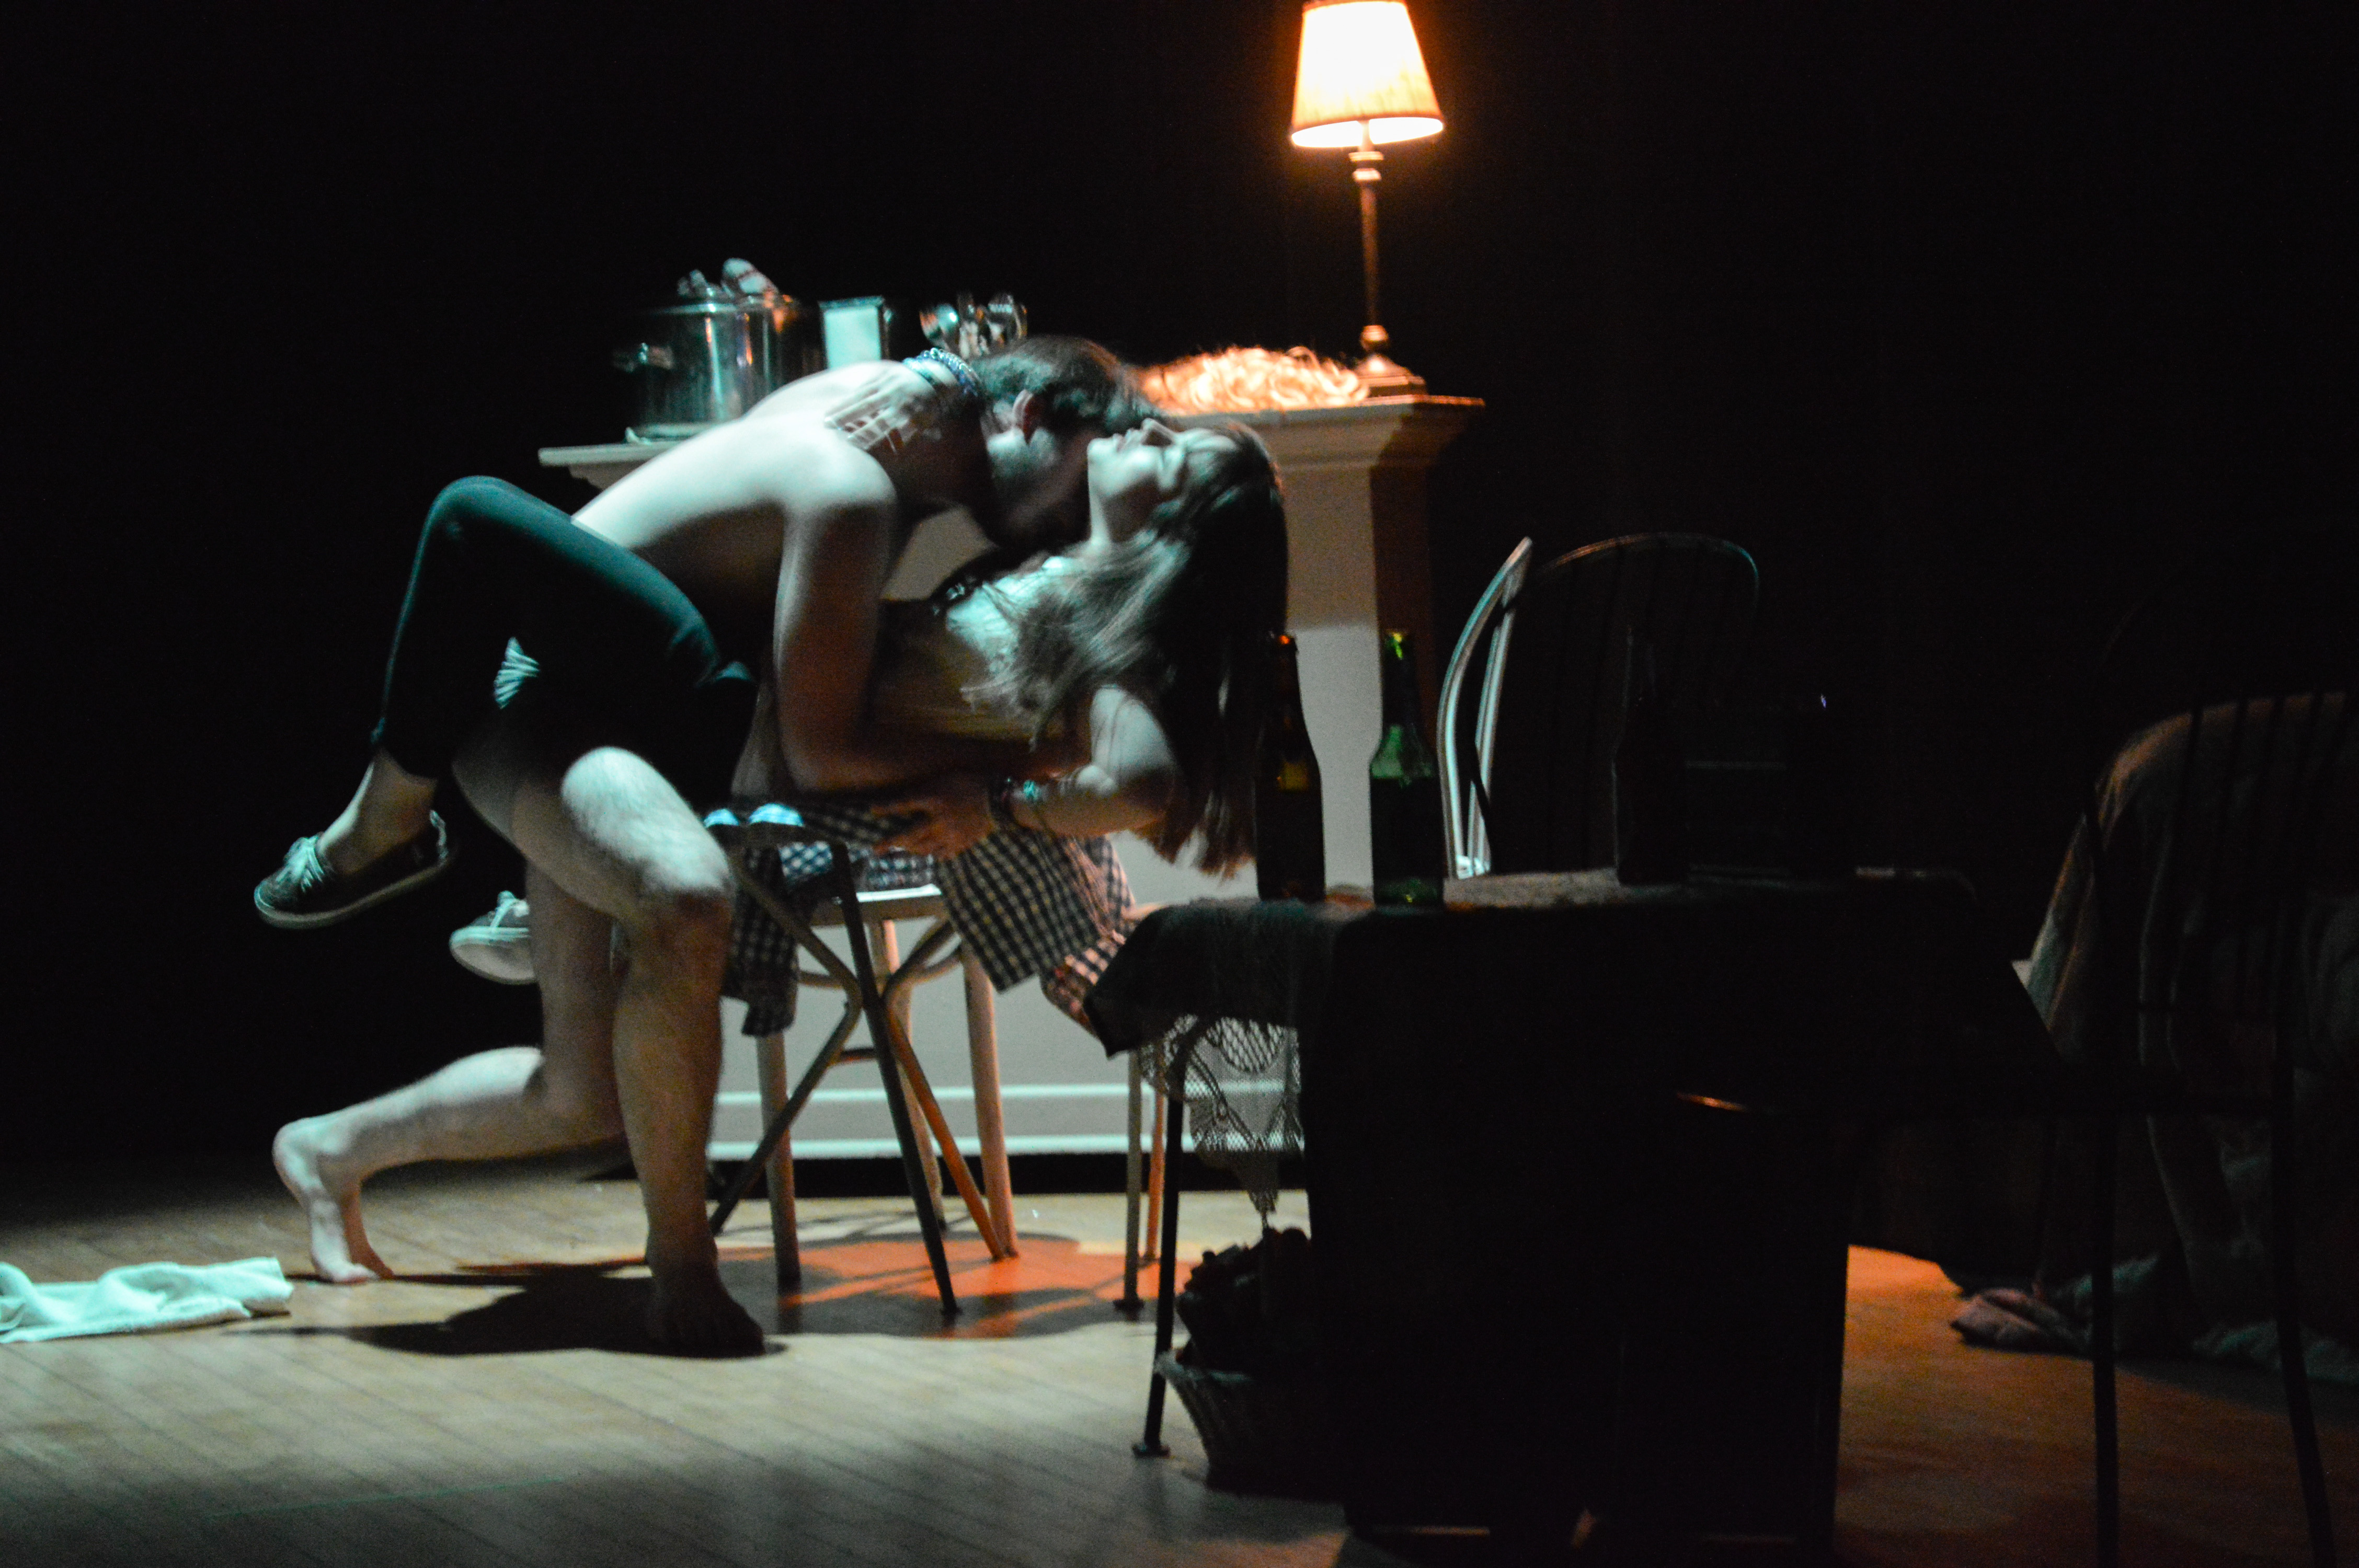 Dennis (Jérémy Benoit) and June (Camille Banville) succumb to passion. Photo by Marina Miller.